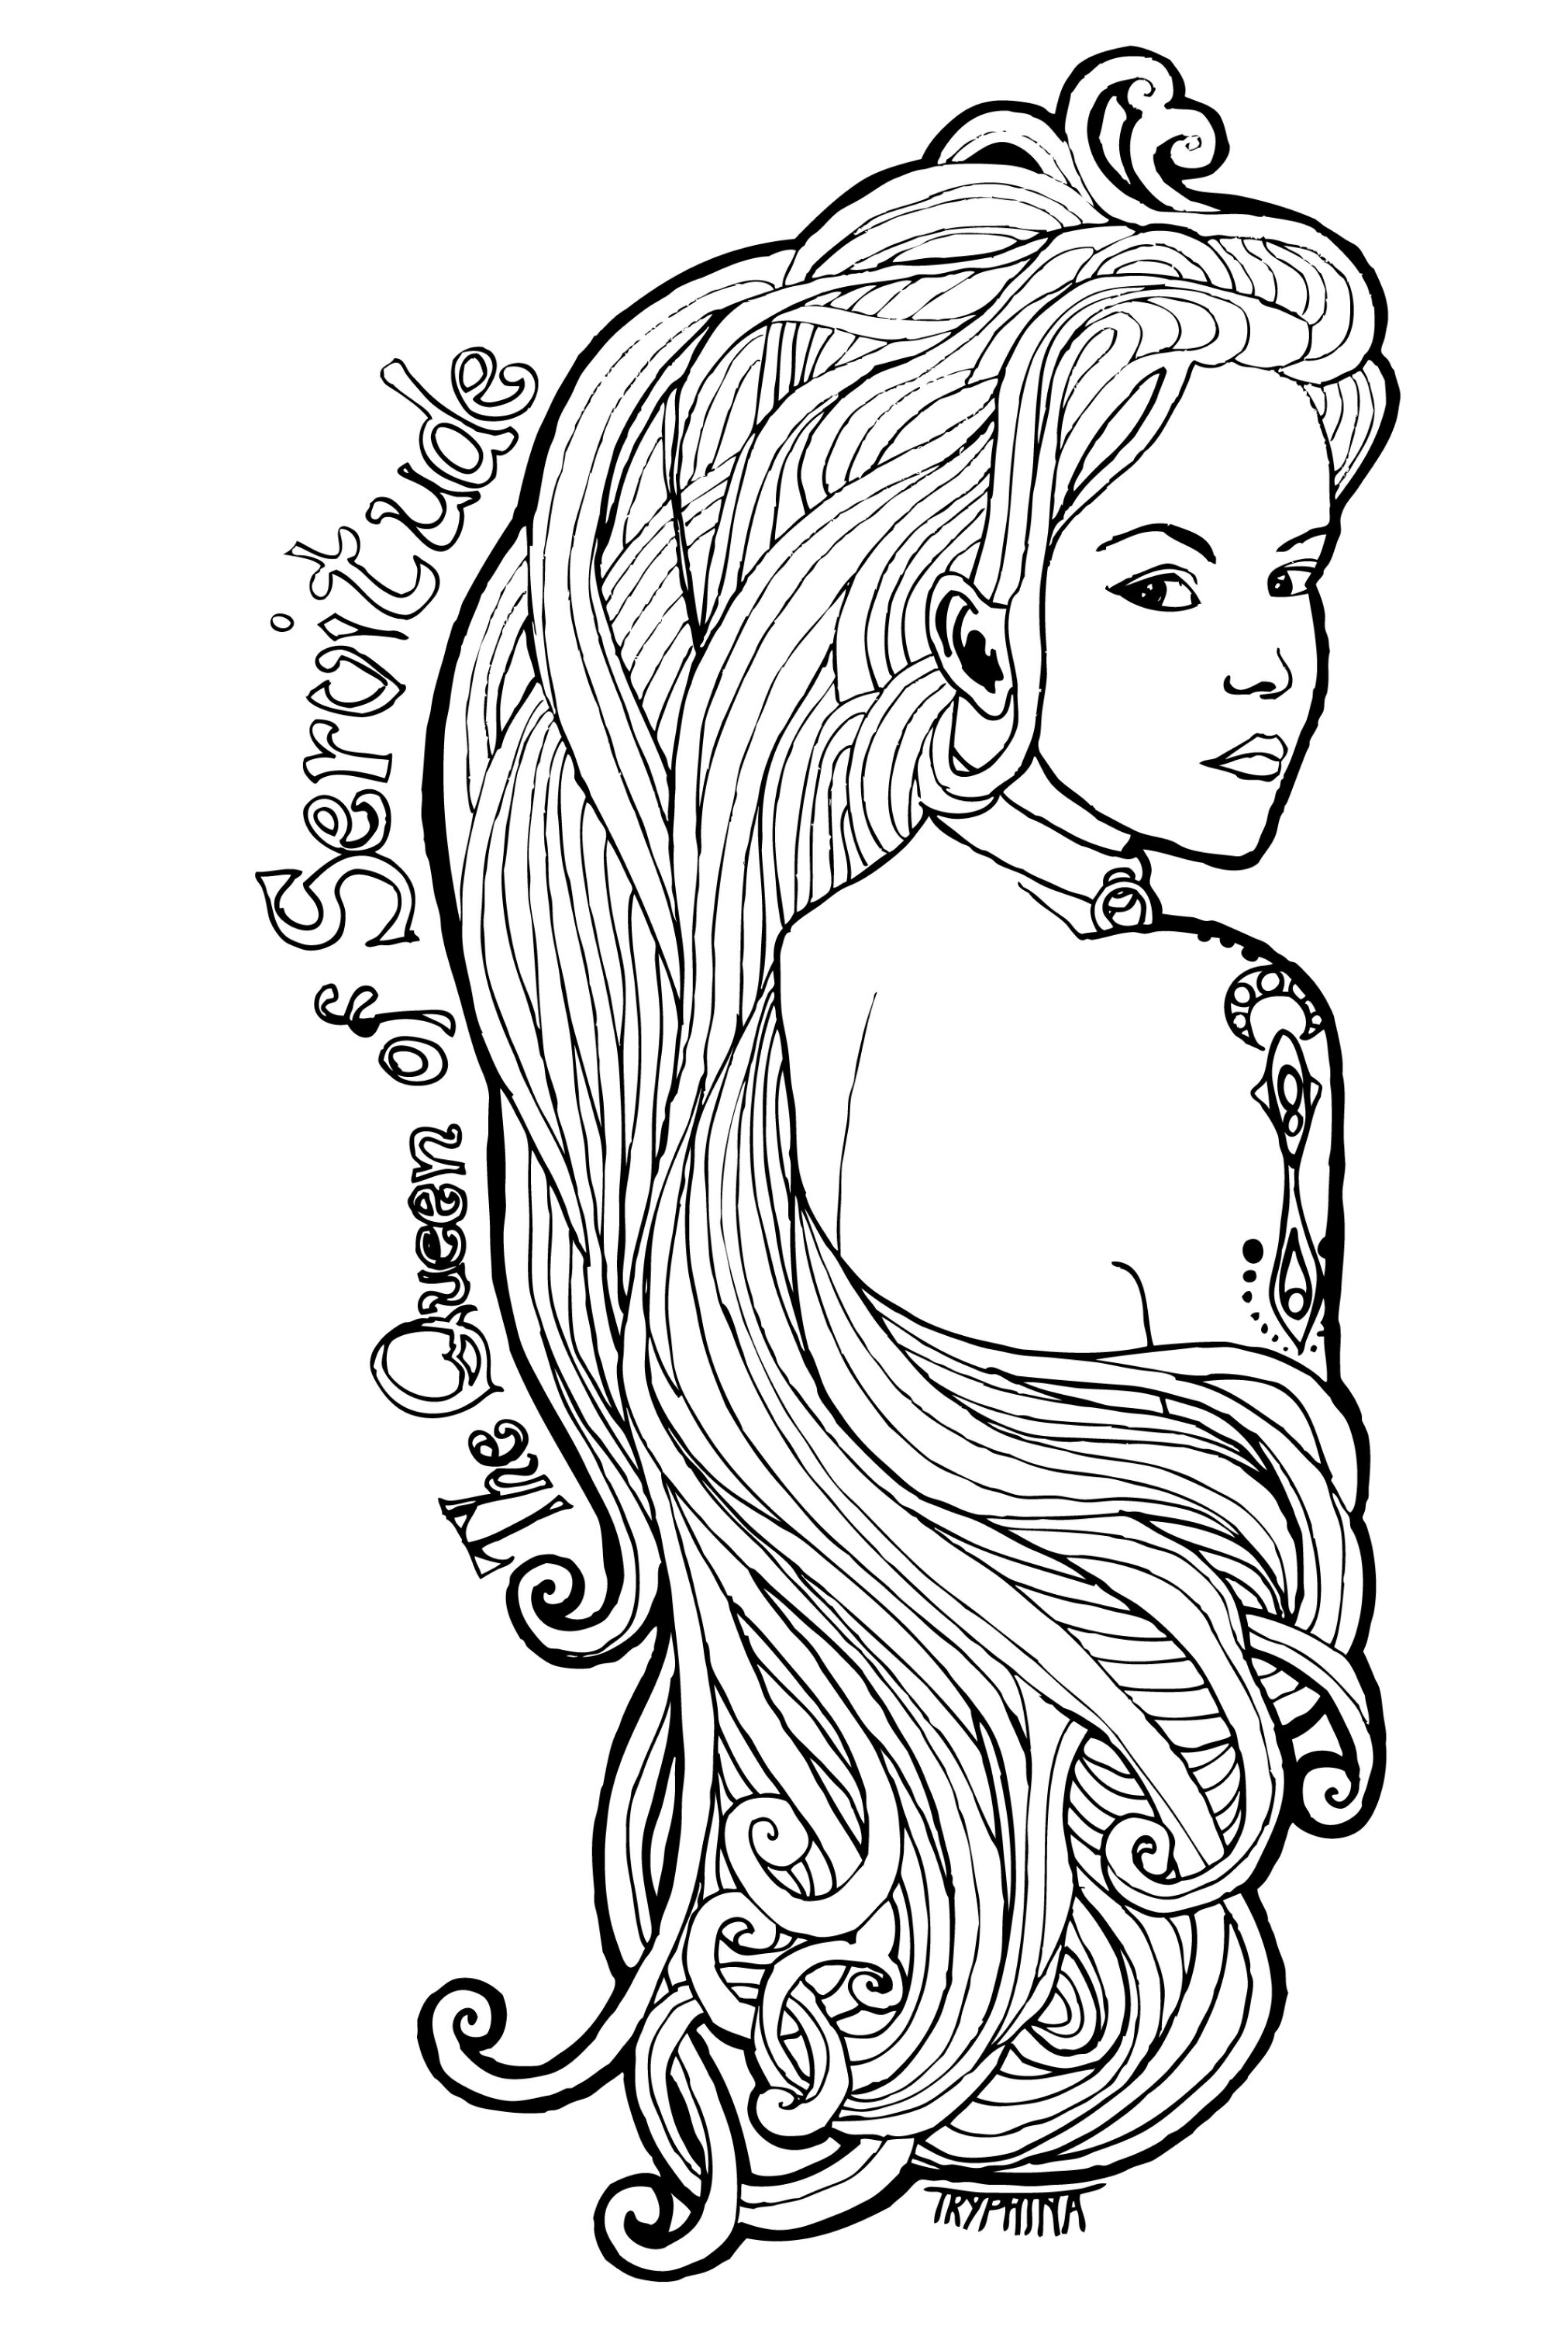 Art nouveau portrait of a young woman with a shoulder tattoo and metal slave collar